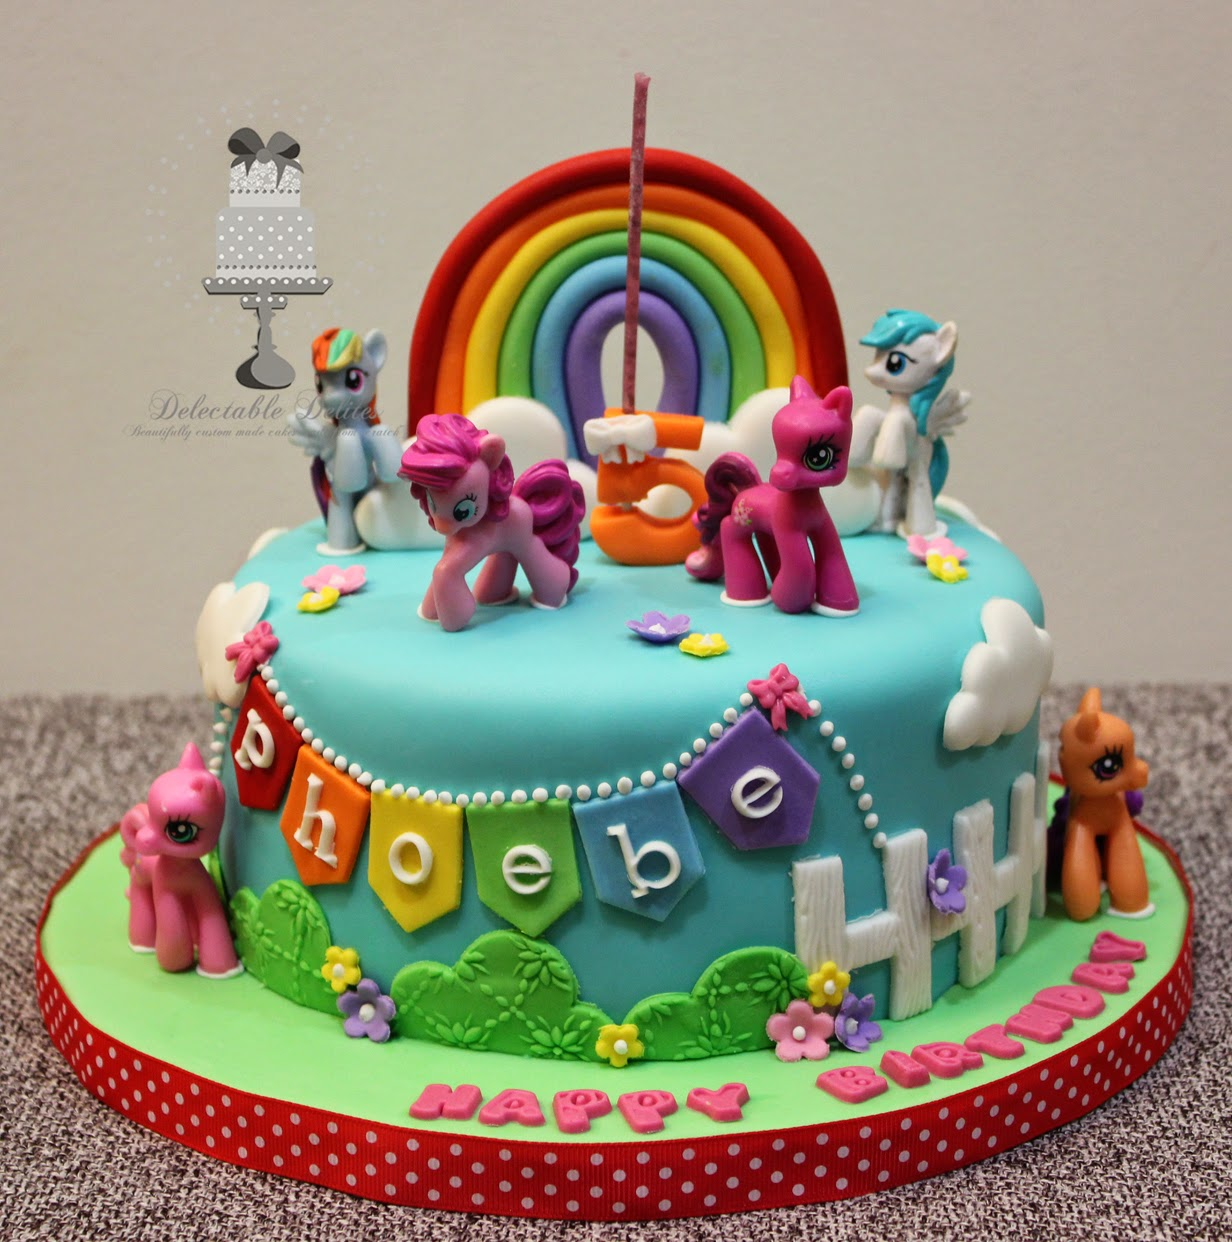 Delectable Delites: My Little Pony cake for Phoebes 5th birthday